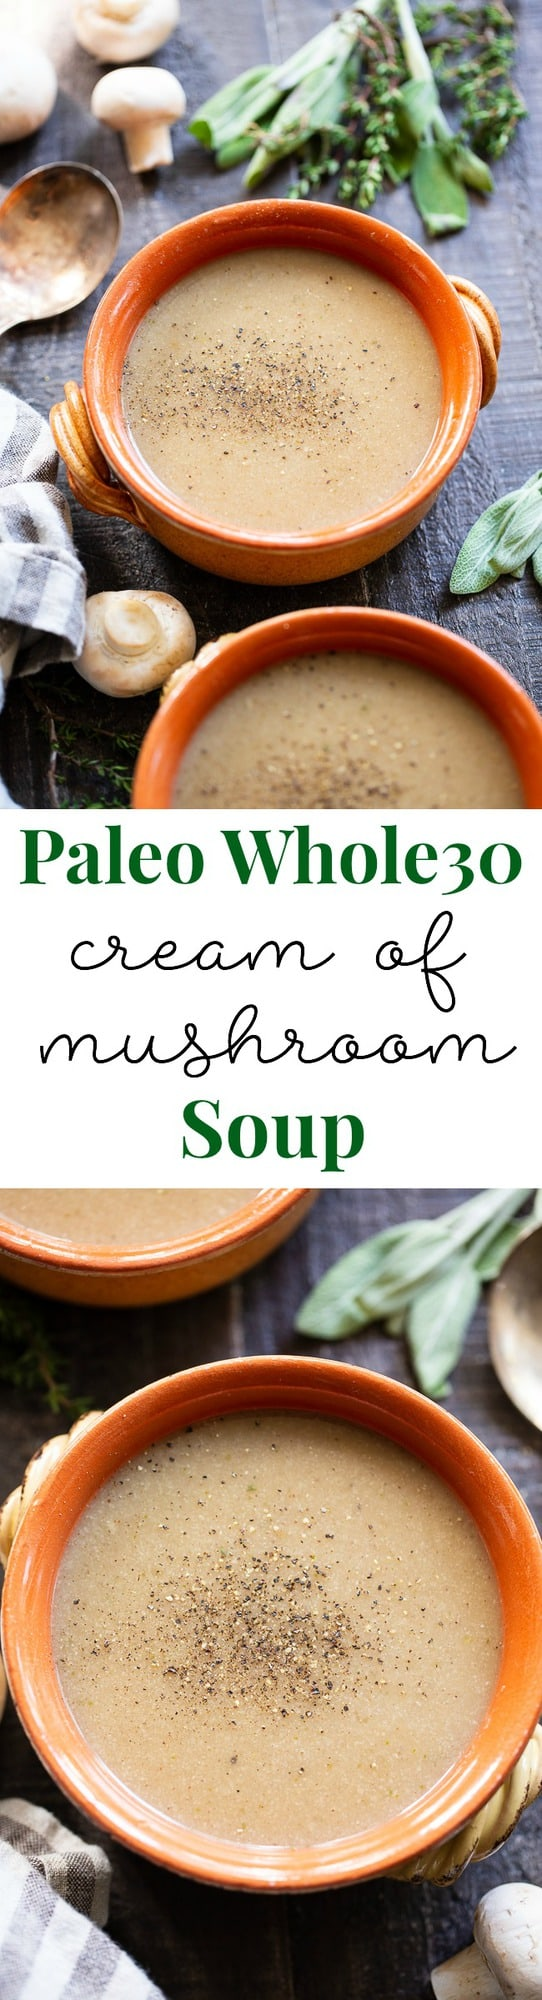 This Paleo Cream of Mushroom Soup is savory and comforting on its own and perfect as a base for so many recipes!  It's simple, fast, and flavorful.  This dairy-free and Whole30 compliant soup is a comforting fall and winter staple.